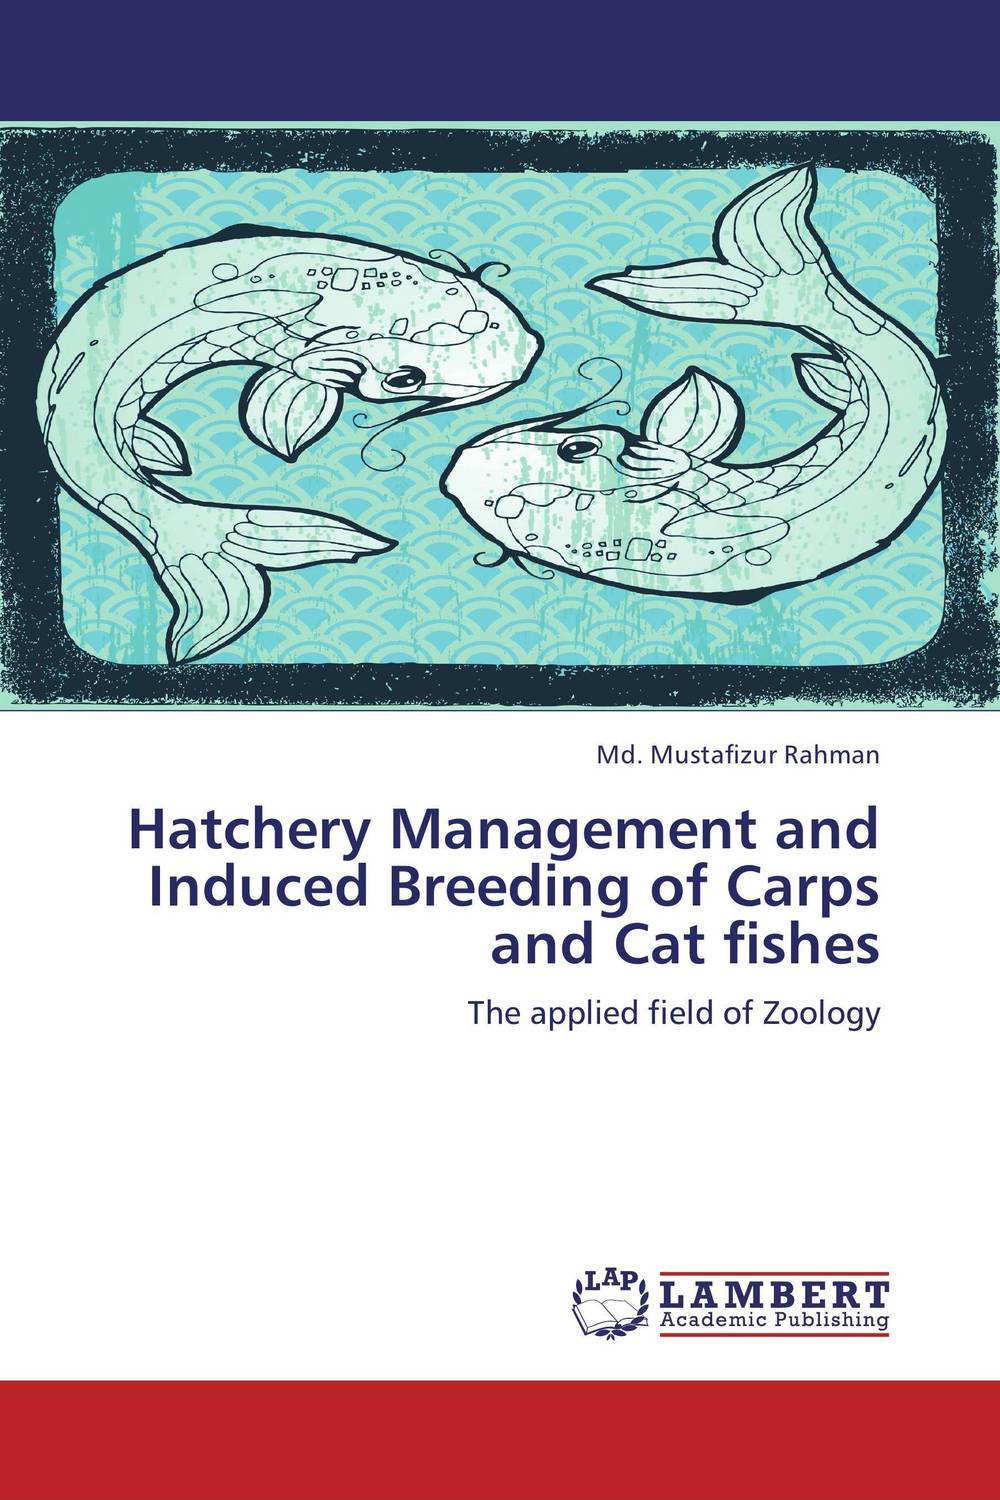 Hatchery Management and Induced Breeding of Carps and Cat fishes a cat a hat and a piece of string